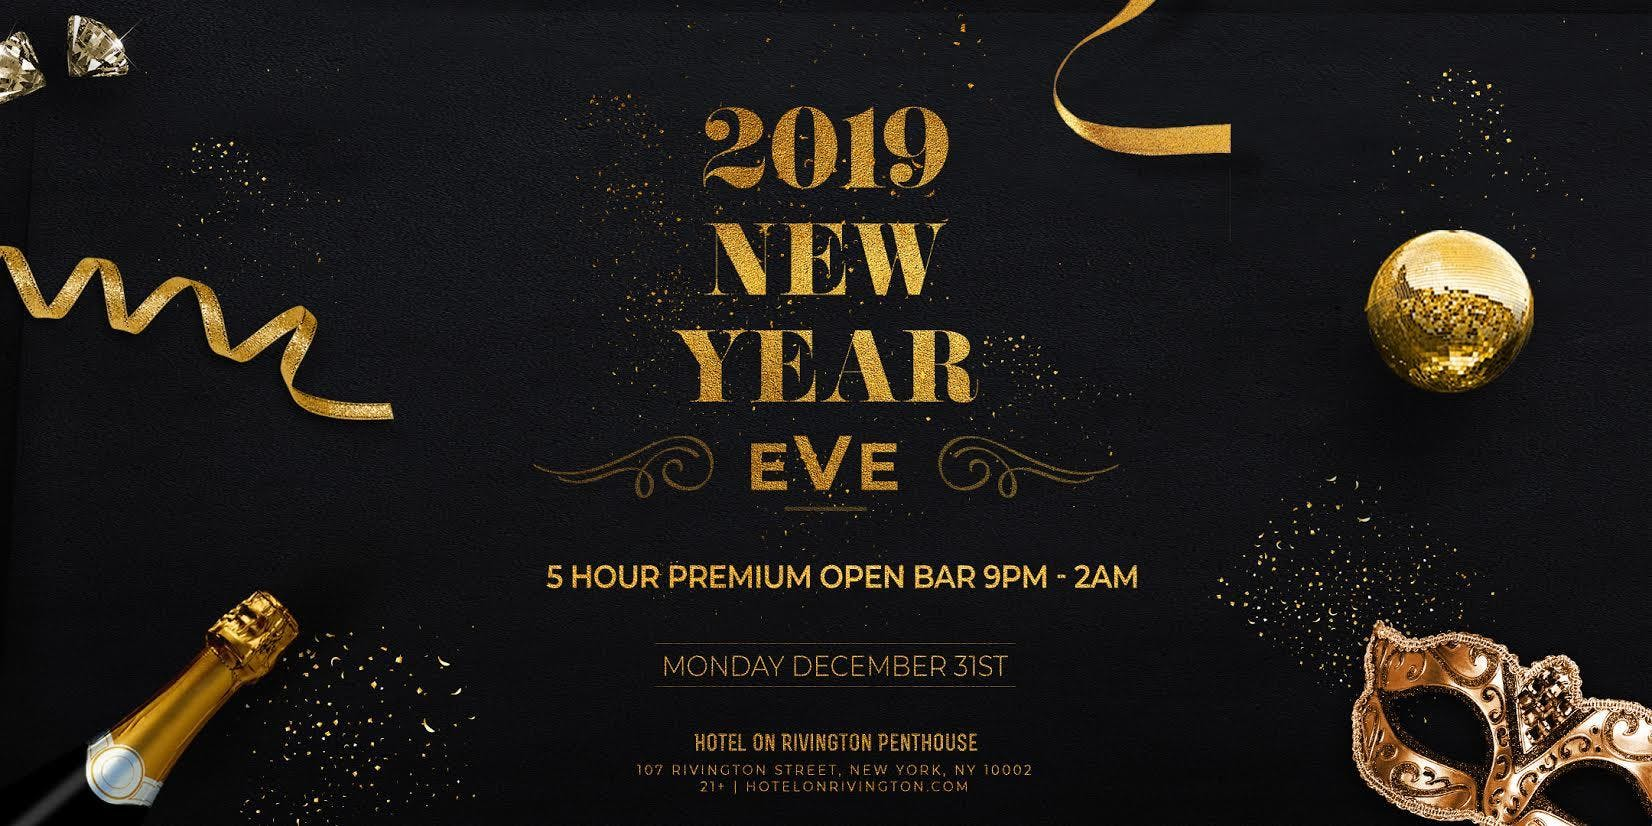 The Penthouse at Hotel on Rivington NYE 2019